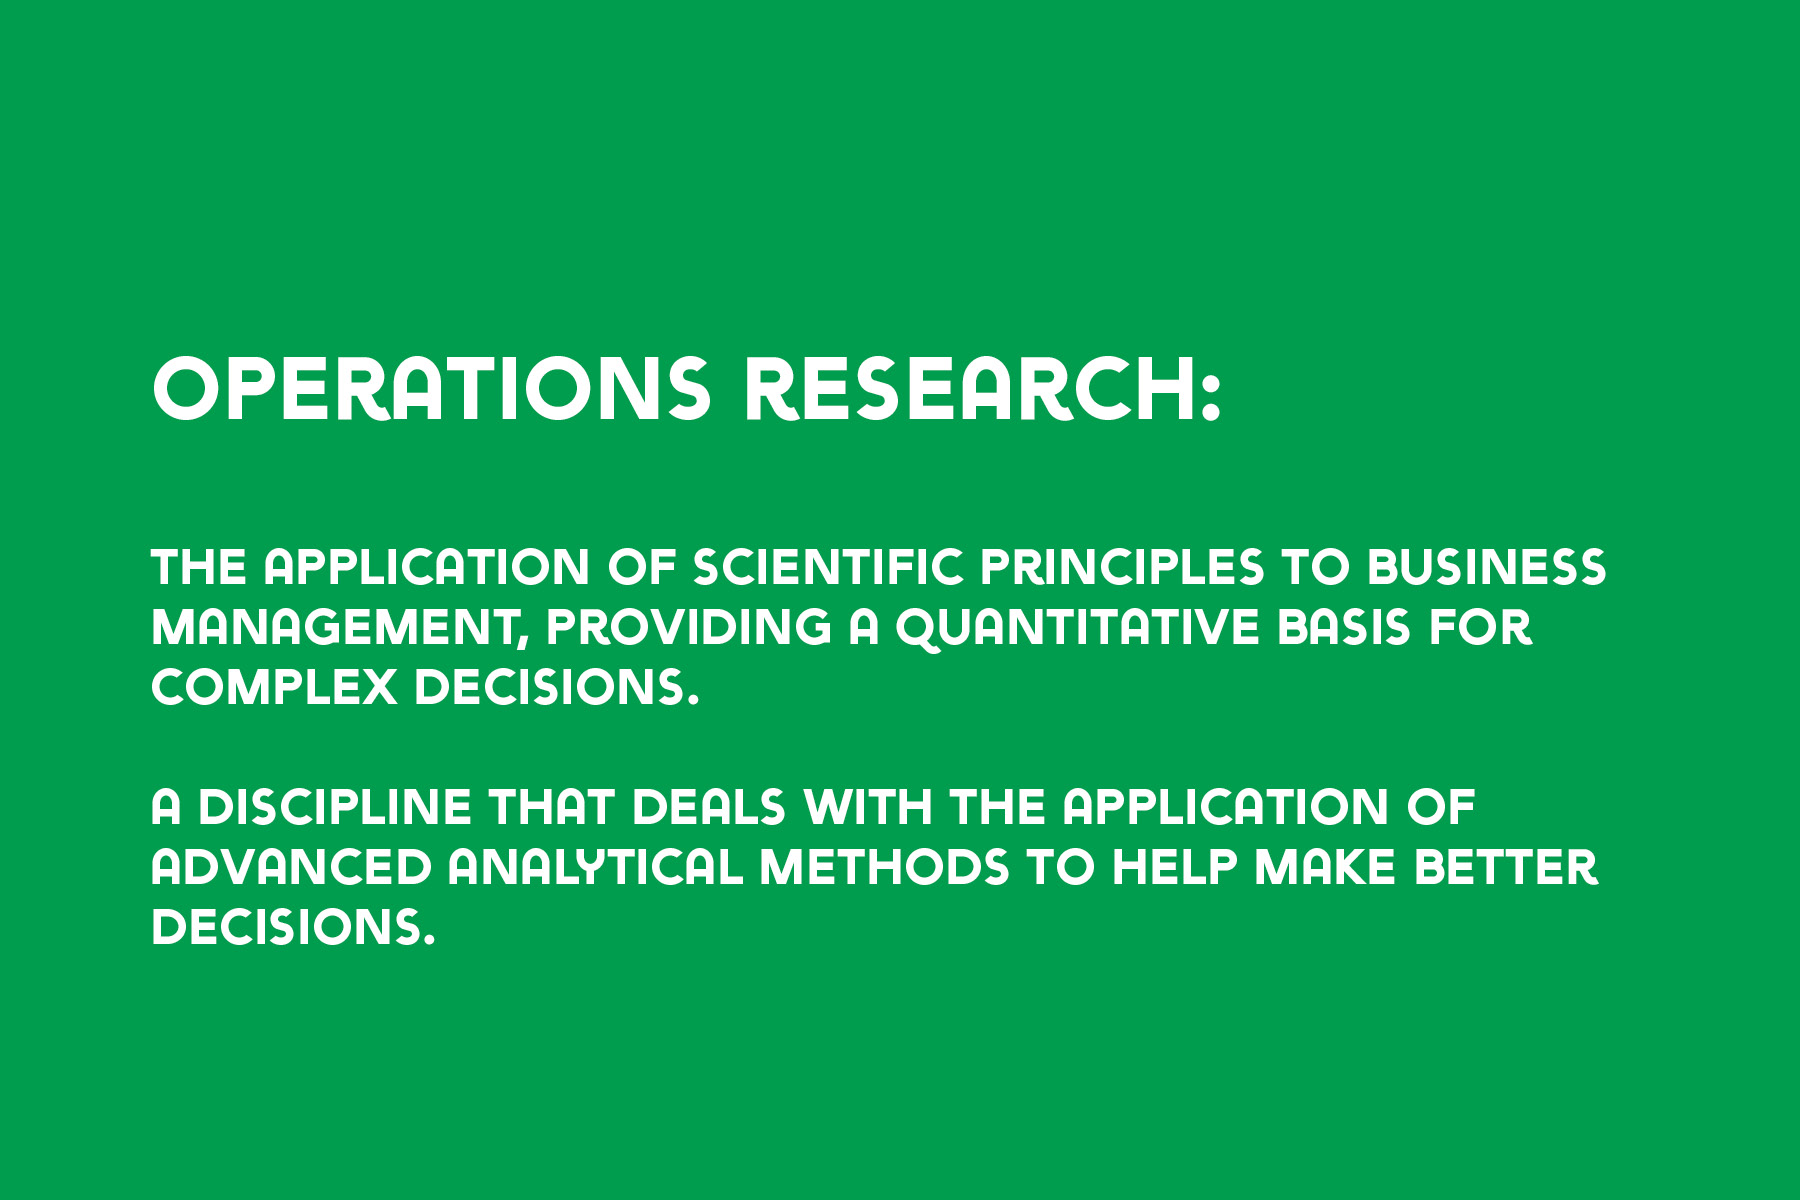 Operations Research definition